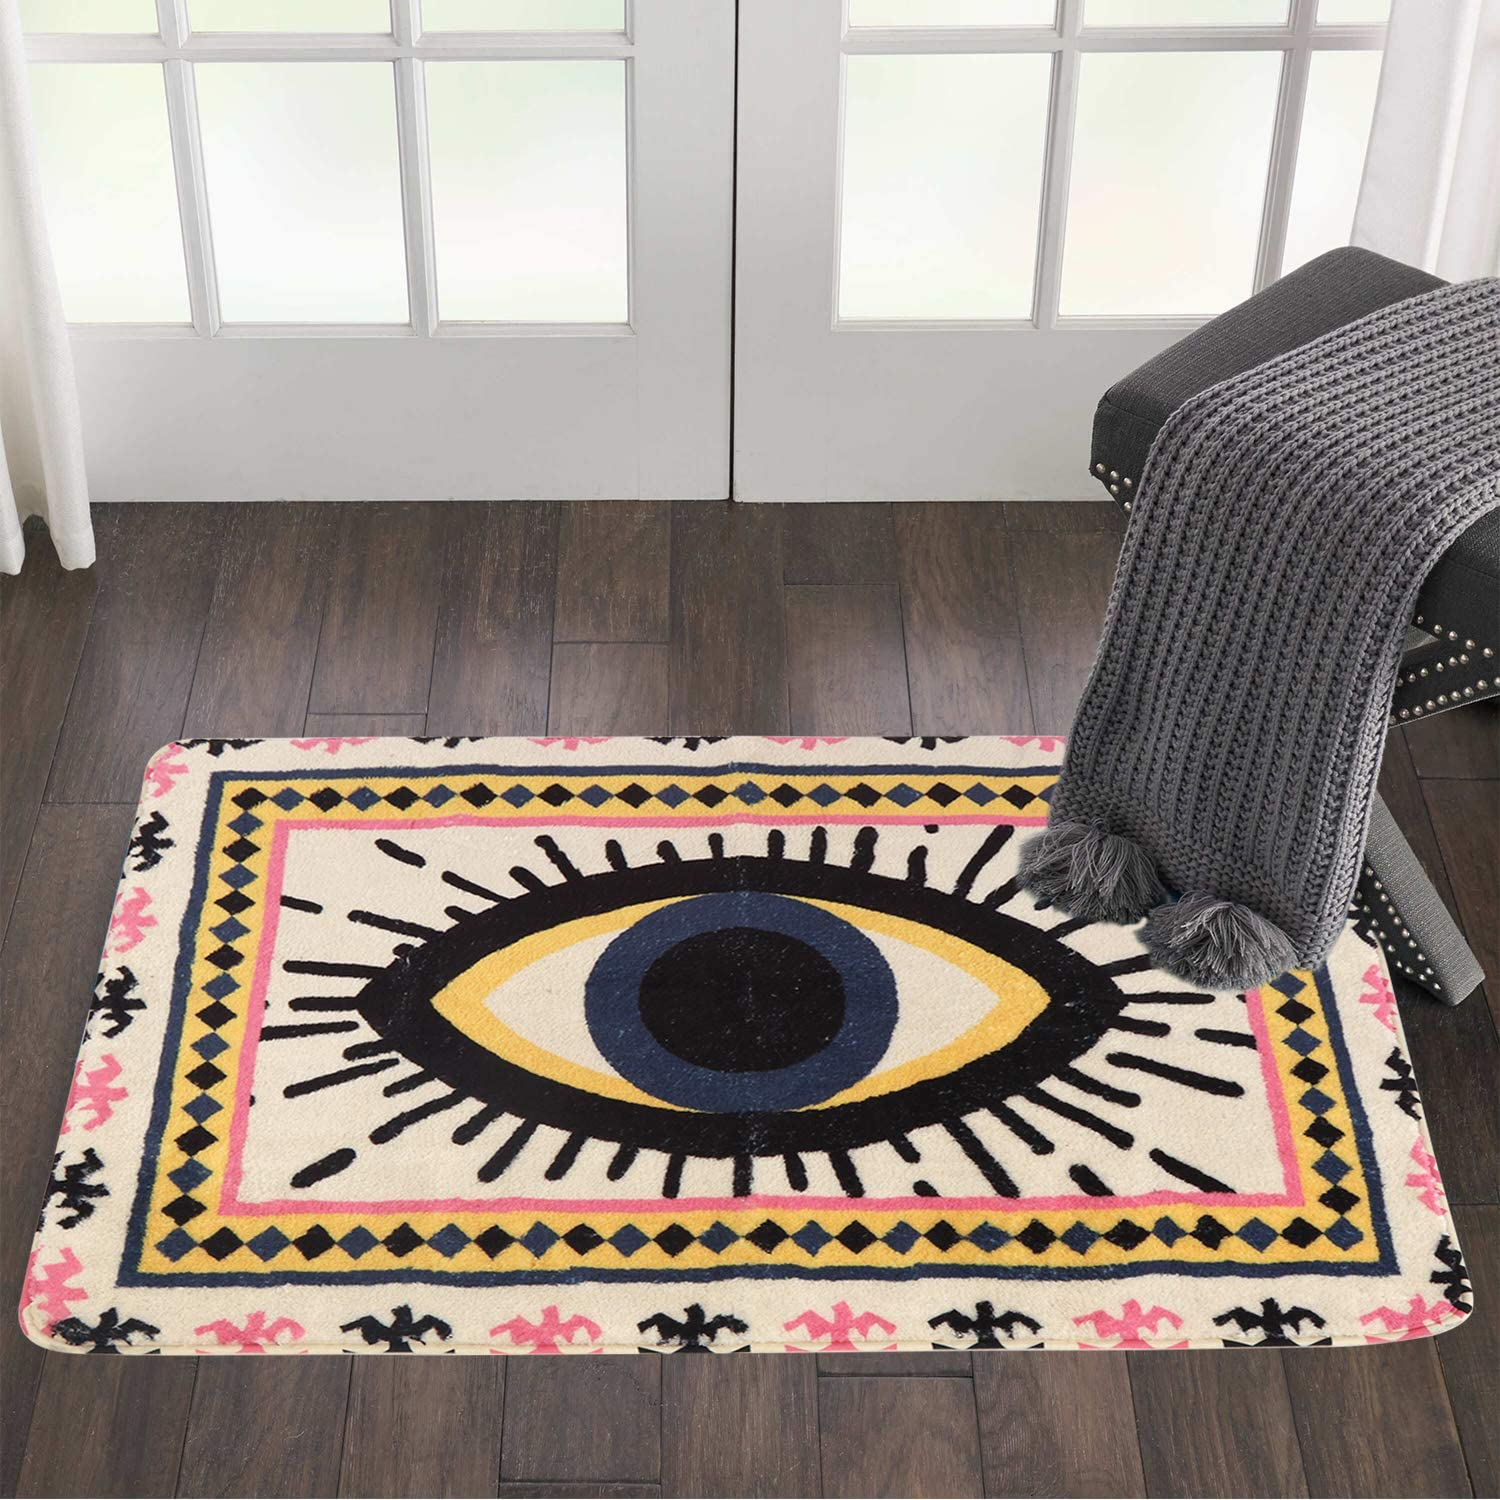 HAOCOO Evil Eye Popular brand in the world Area Ranking TOP10 Rugs Style Tribal 2'x3' Non-Slip